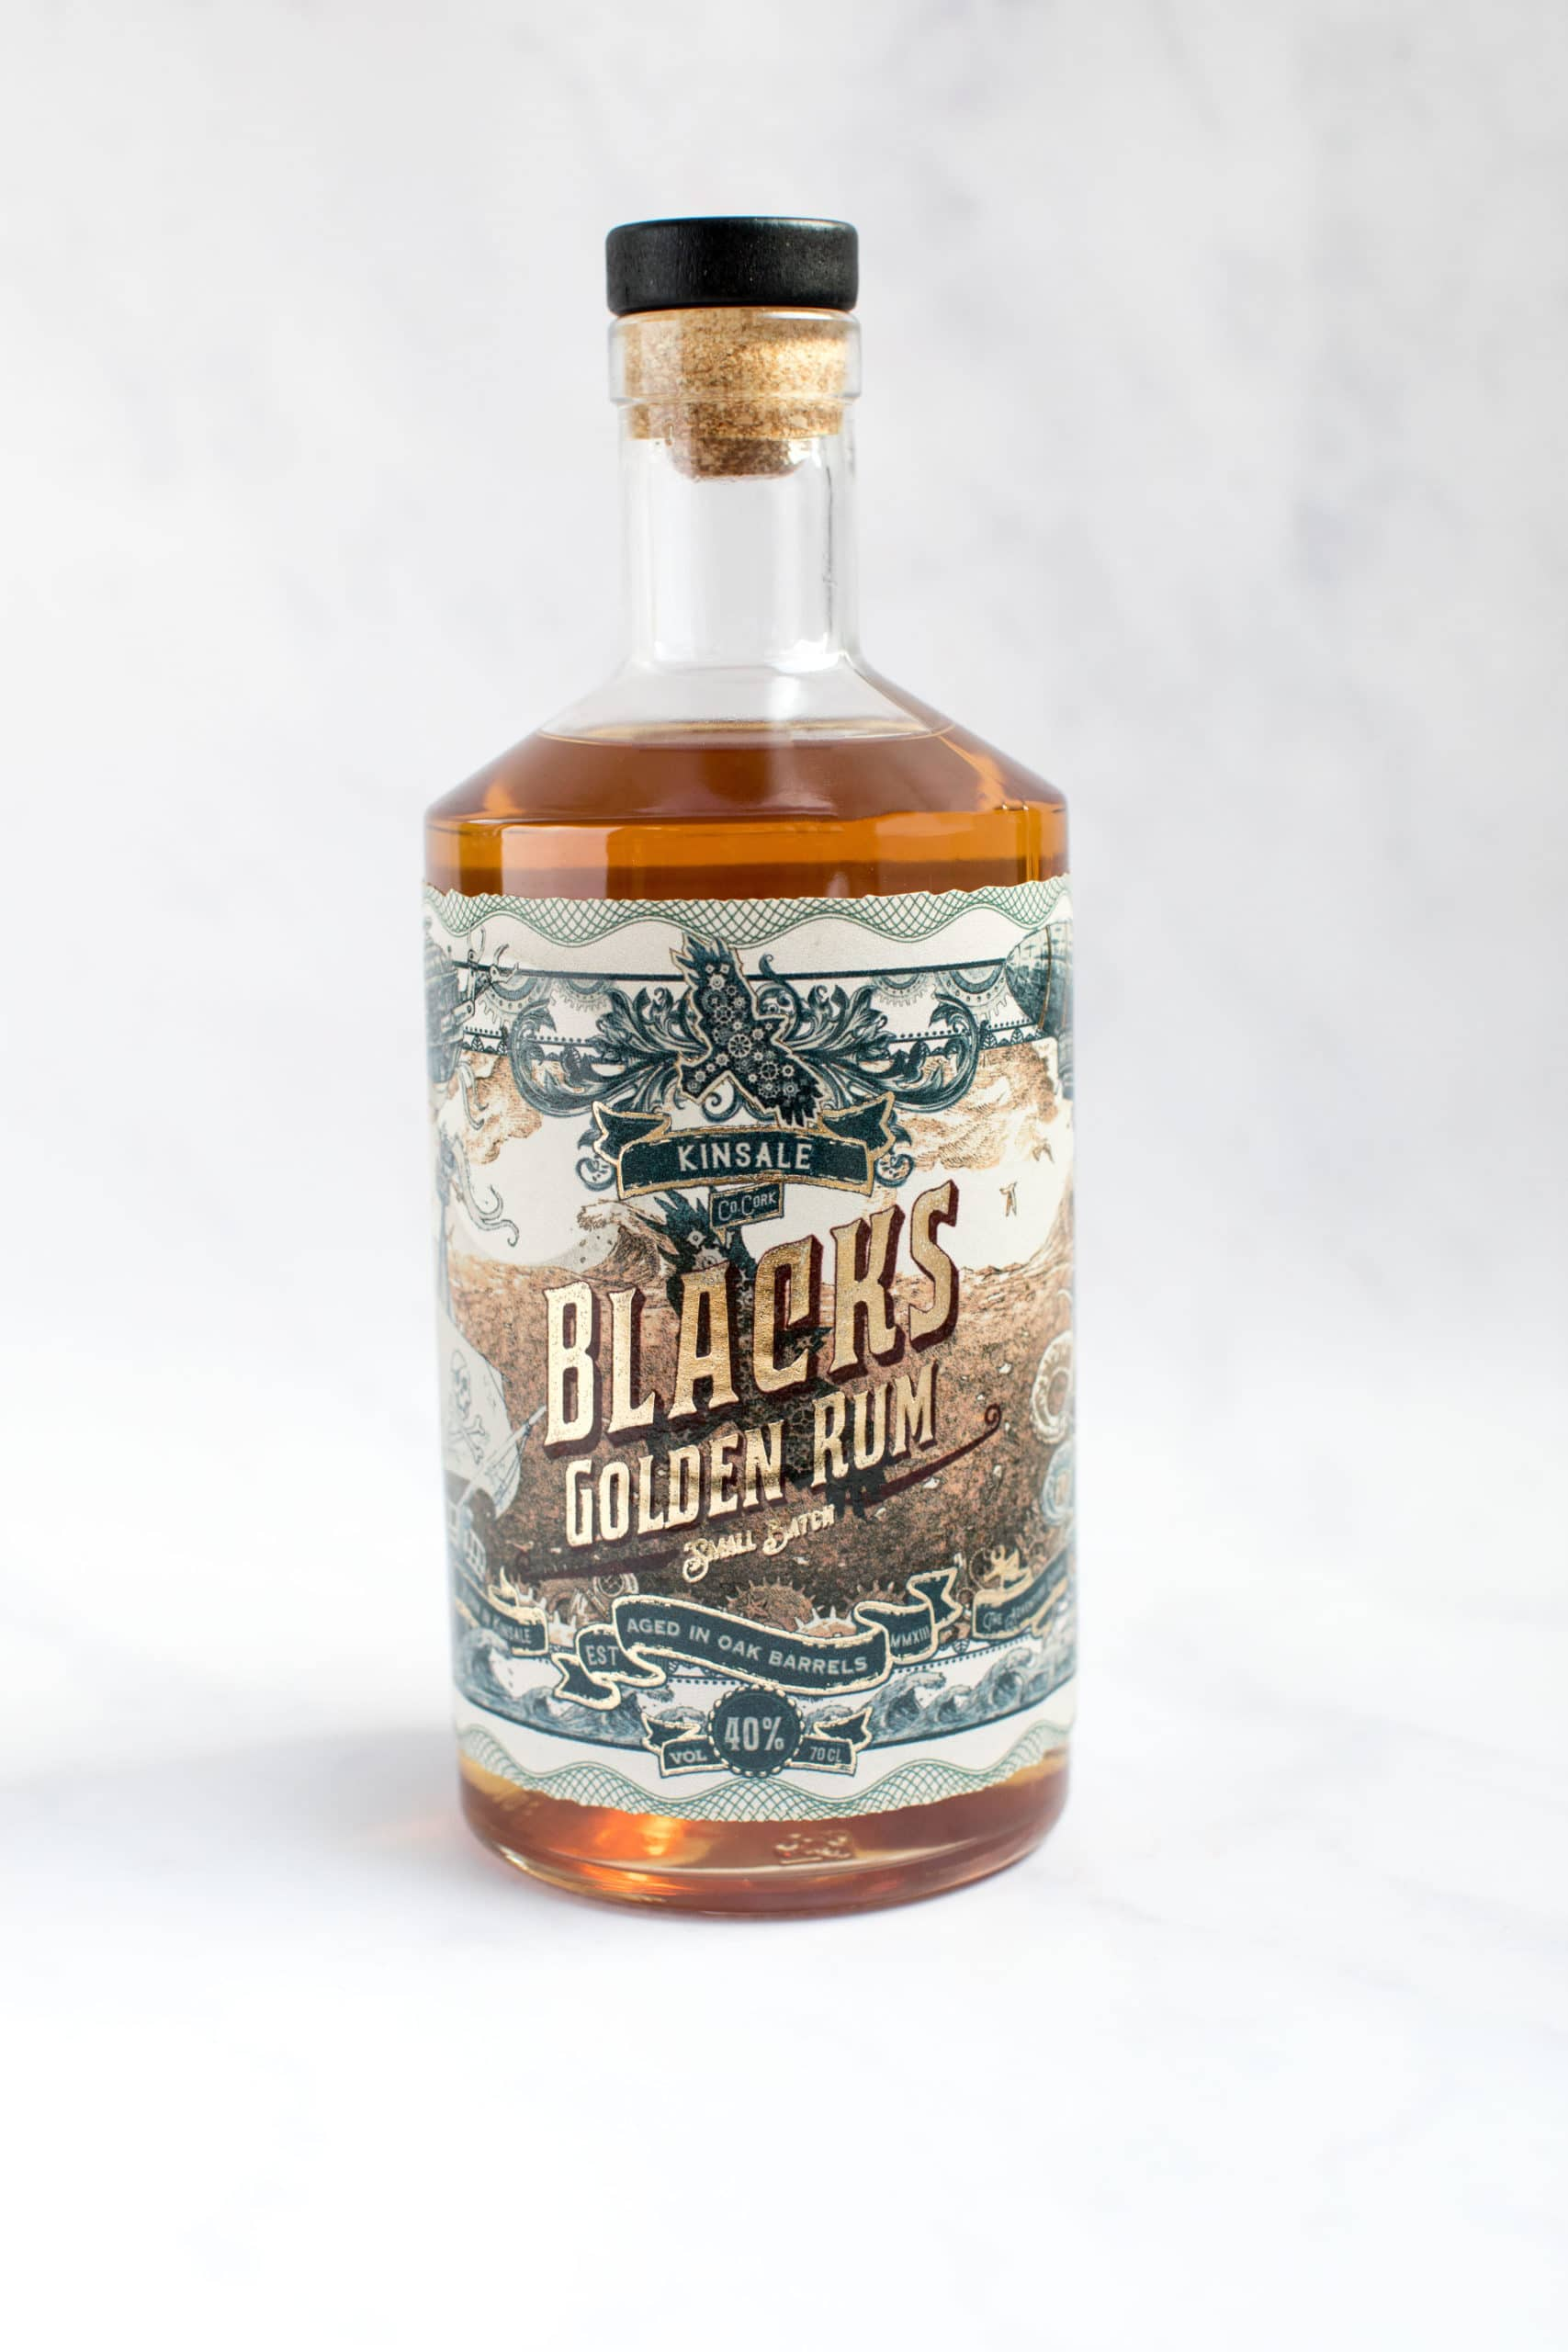 Blacks of Kinsale brings home Gold for Golden Rum at World Rum Awards